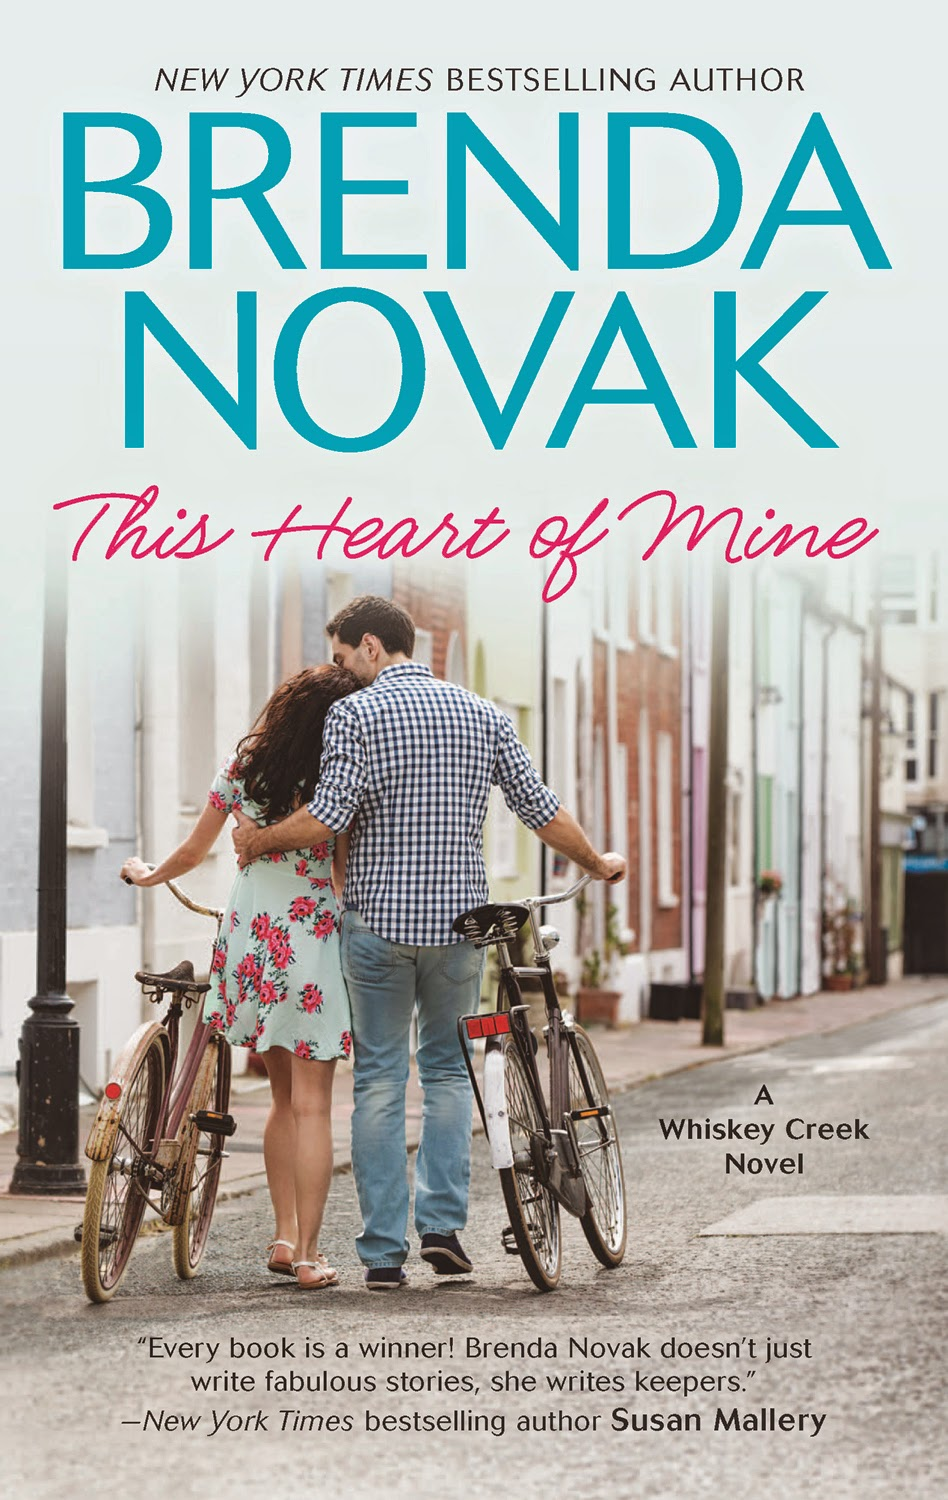 http://www.barnesandnoble.com/w/this-heart-of-mine-brenda-novak/